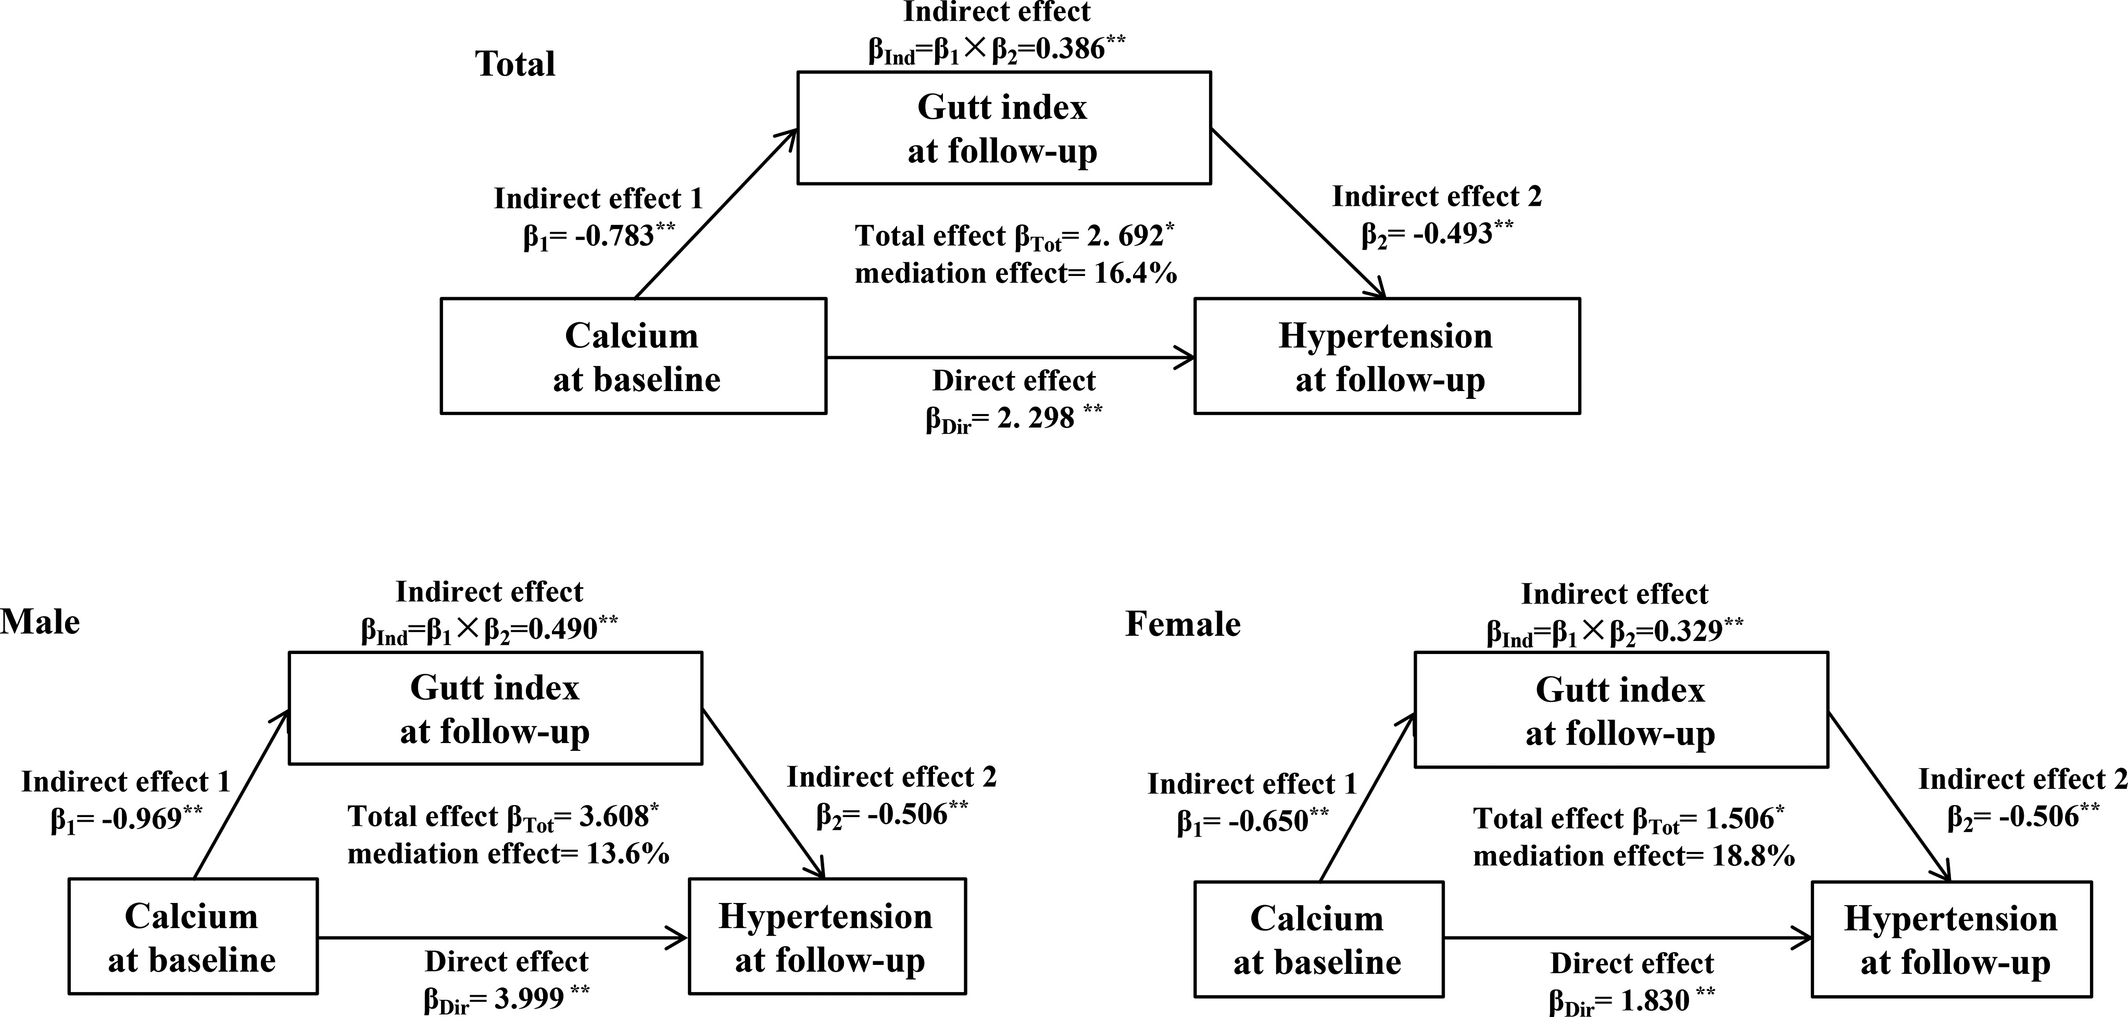 Association of Serum Calcium and Insulin Resistance With